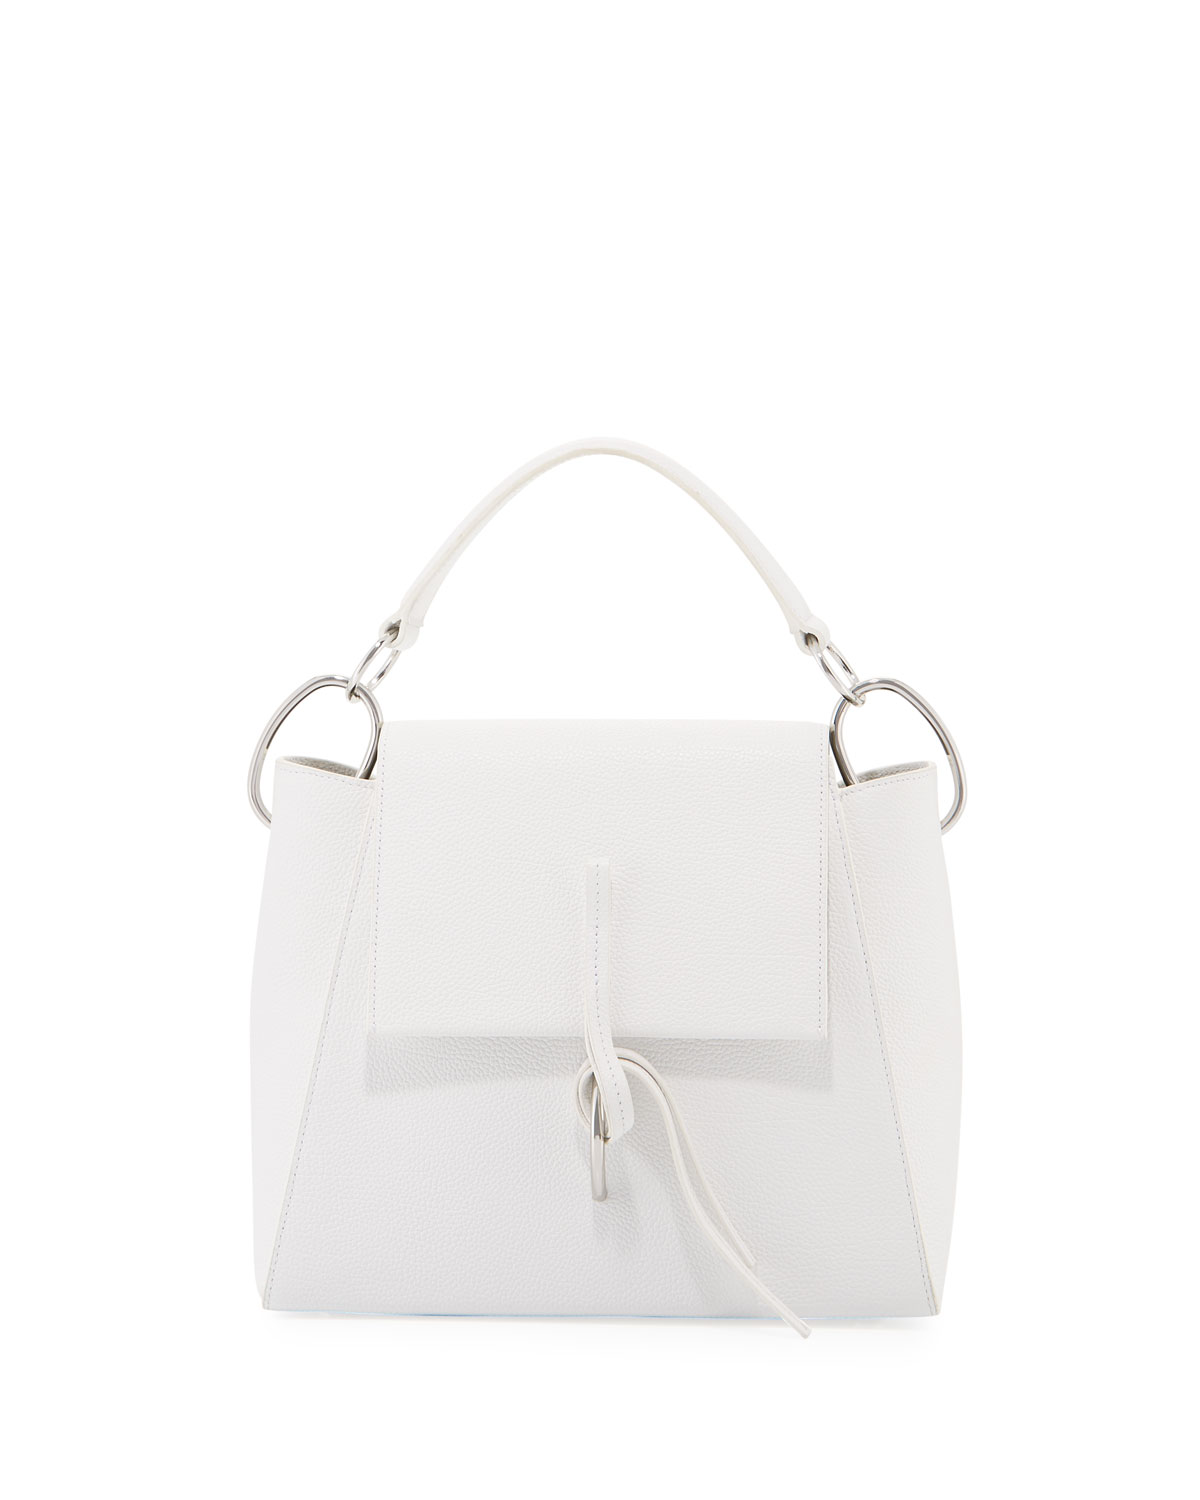 Leigh Leather Satchel Bag